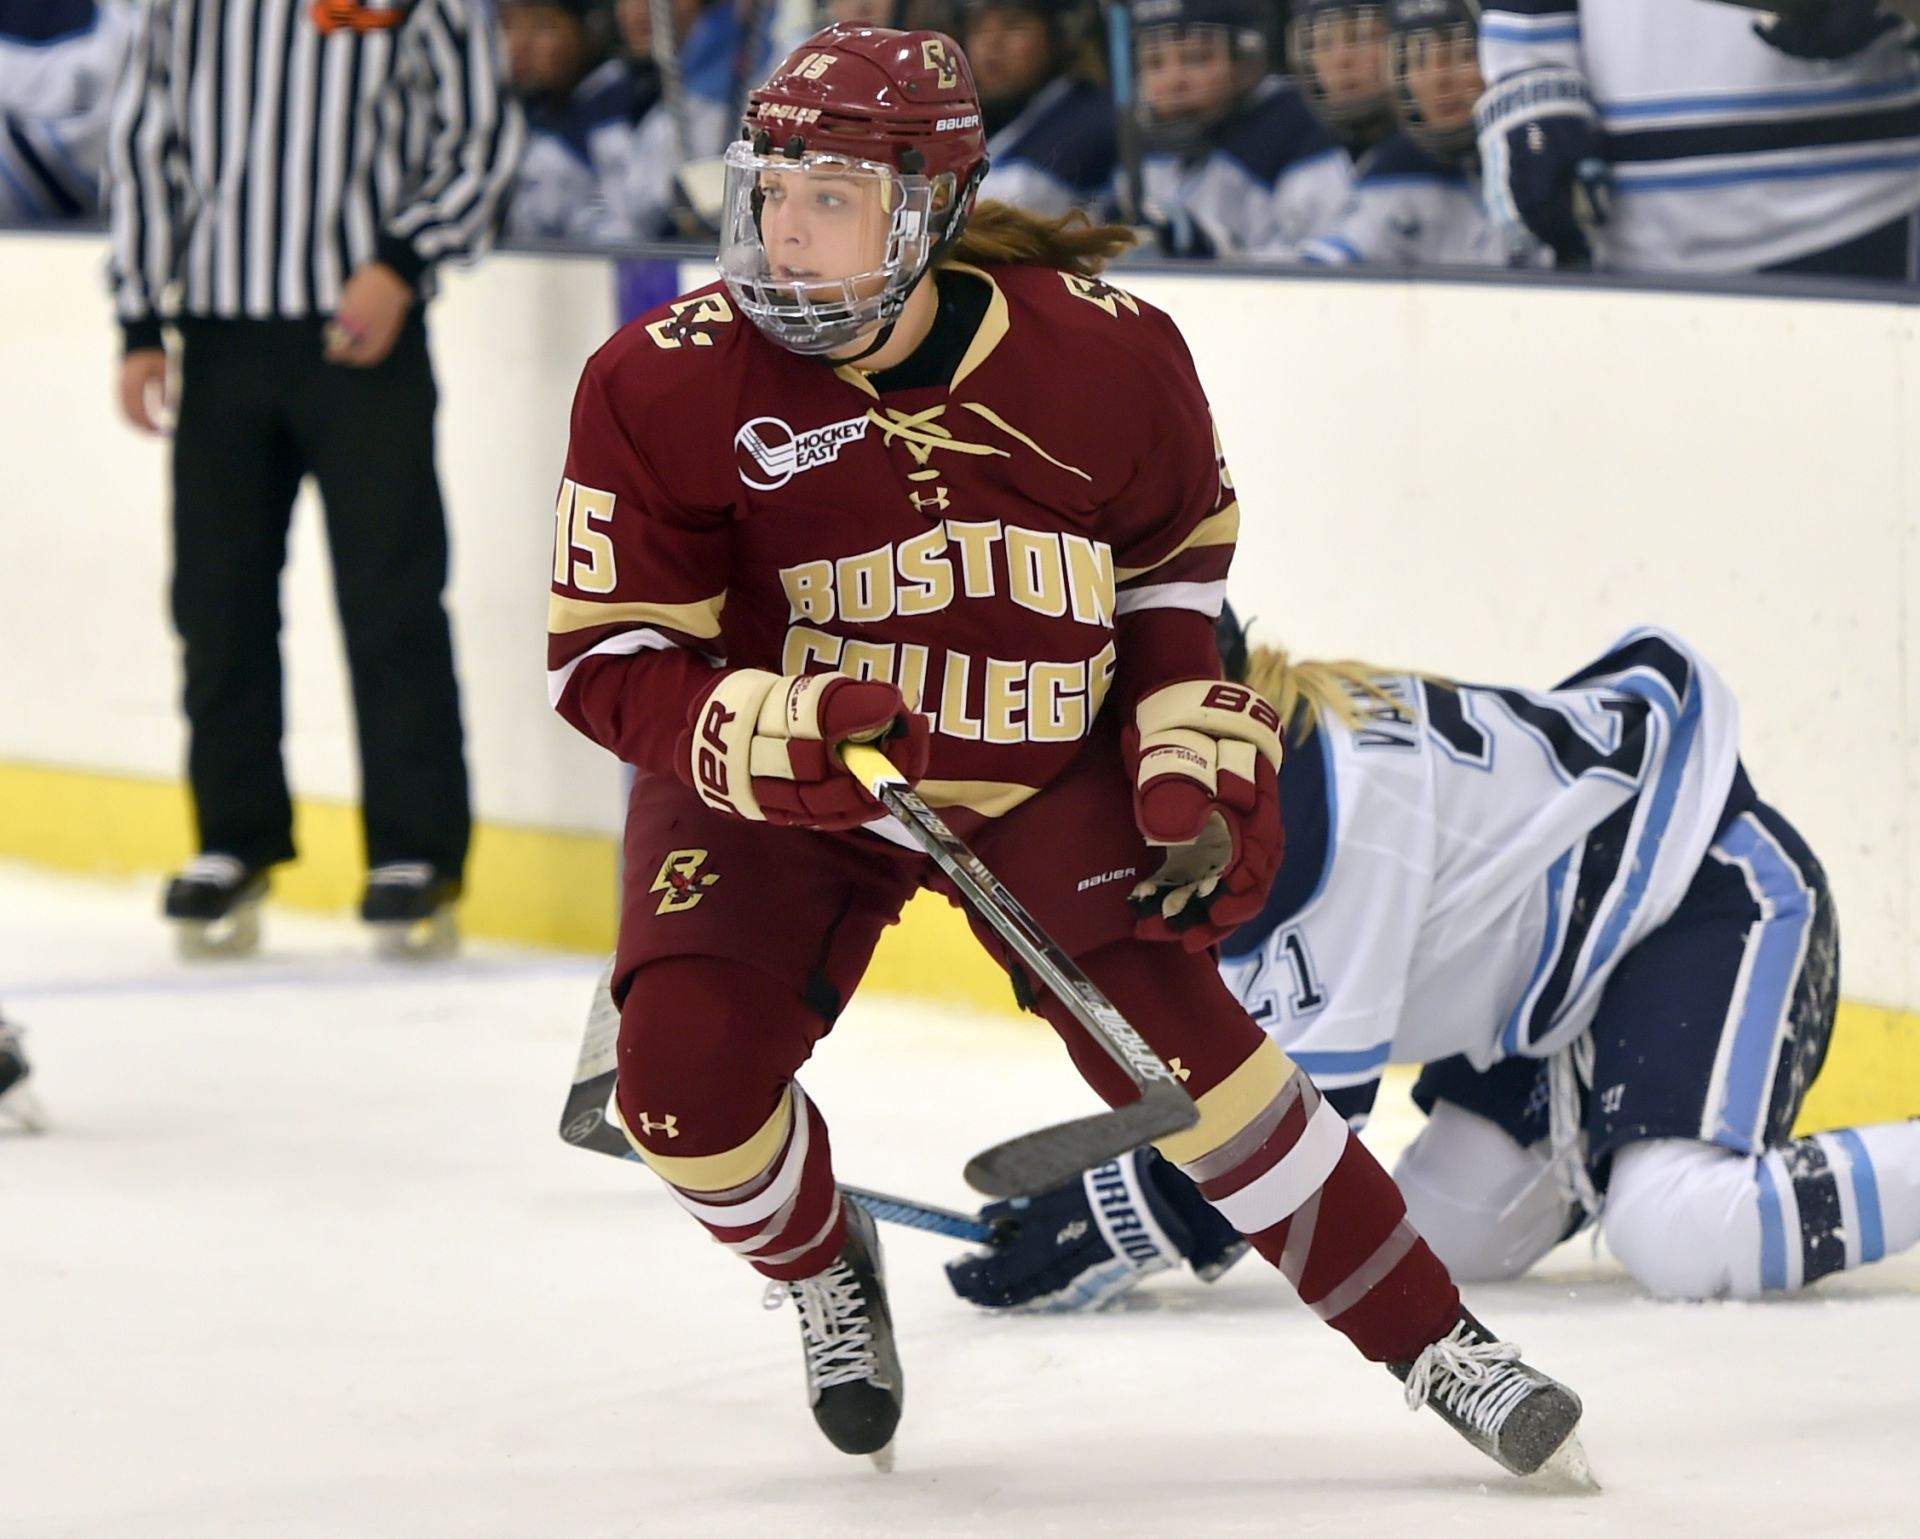 Erin Connolly '15 - Boston College